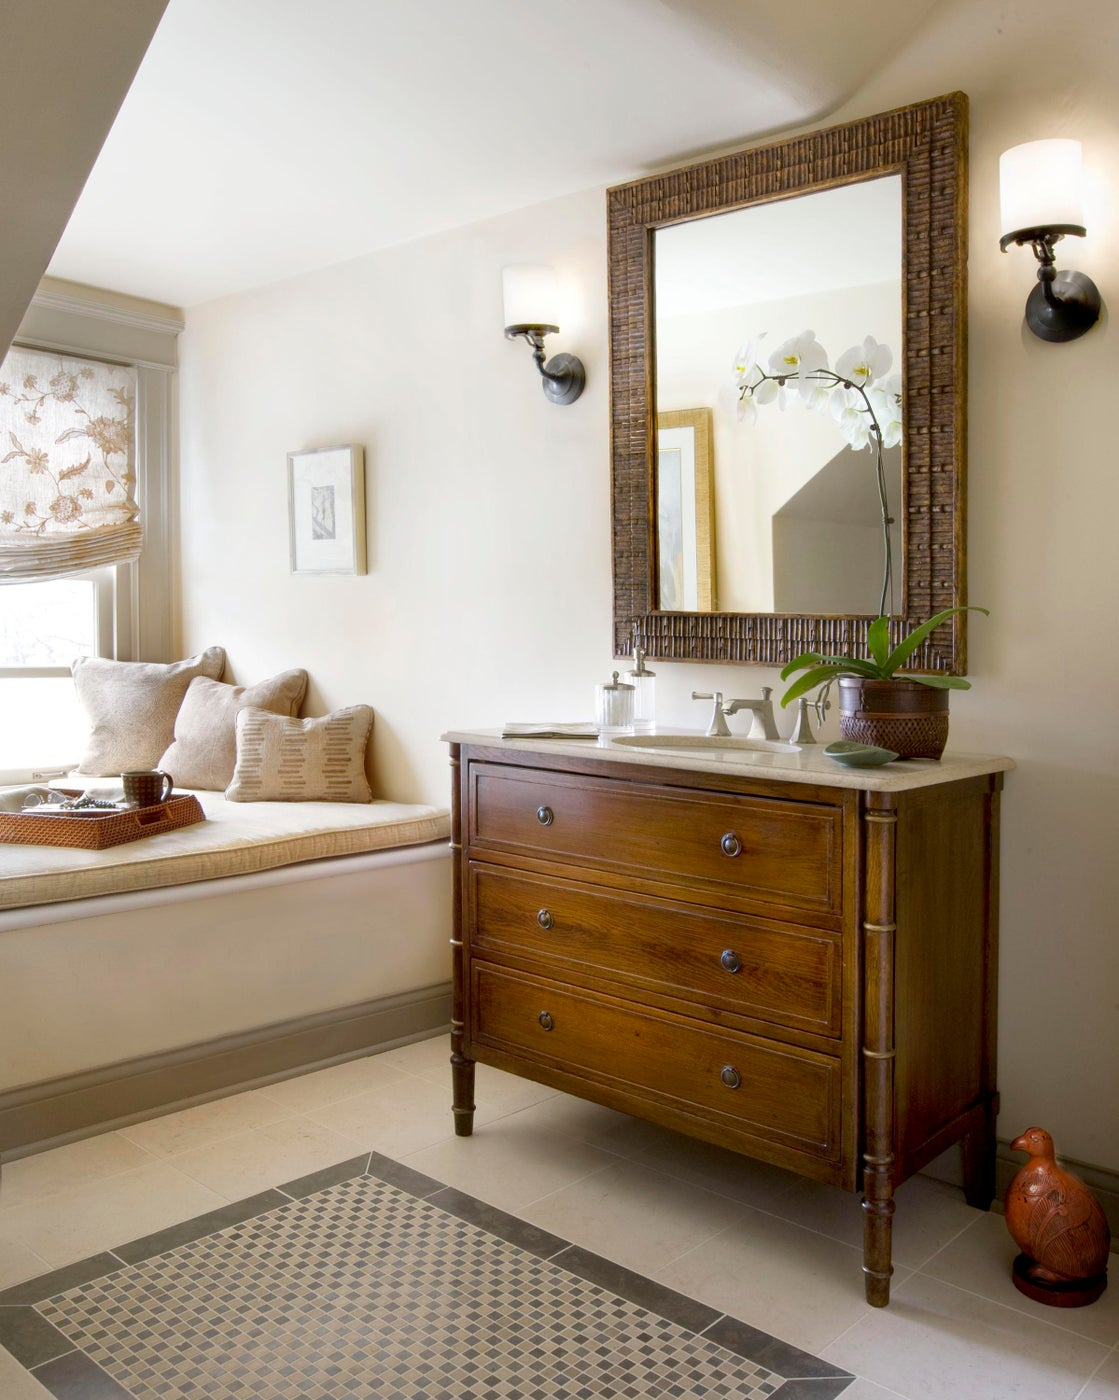 Modified vintage chest for Bathroom vanity for Lake Forest Showhouse & Gardens